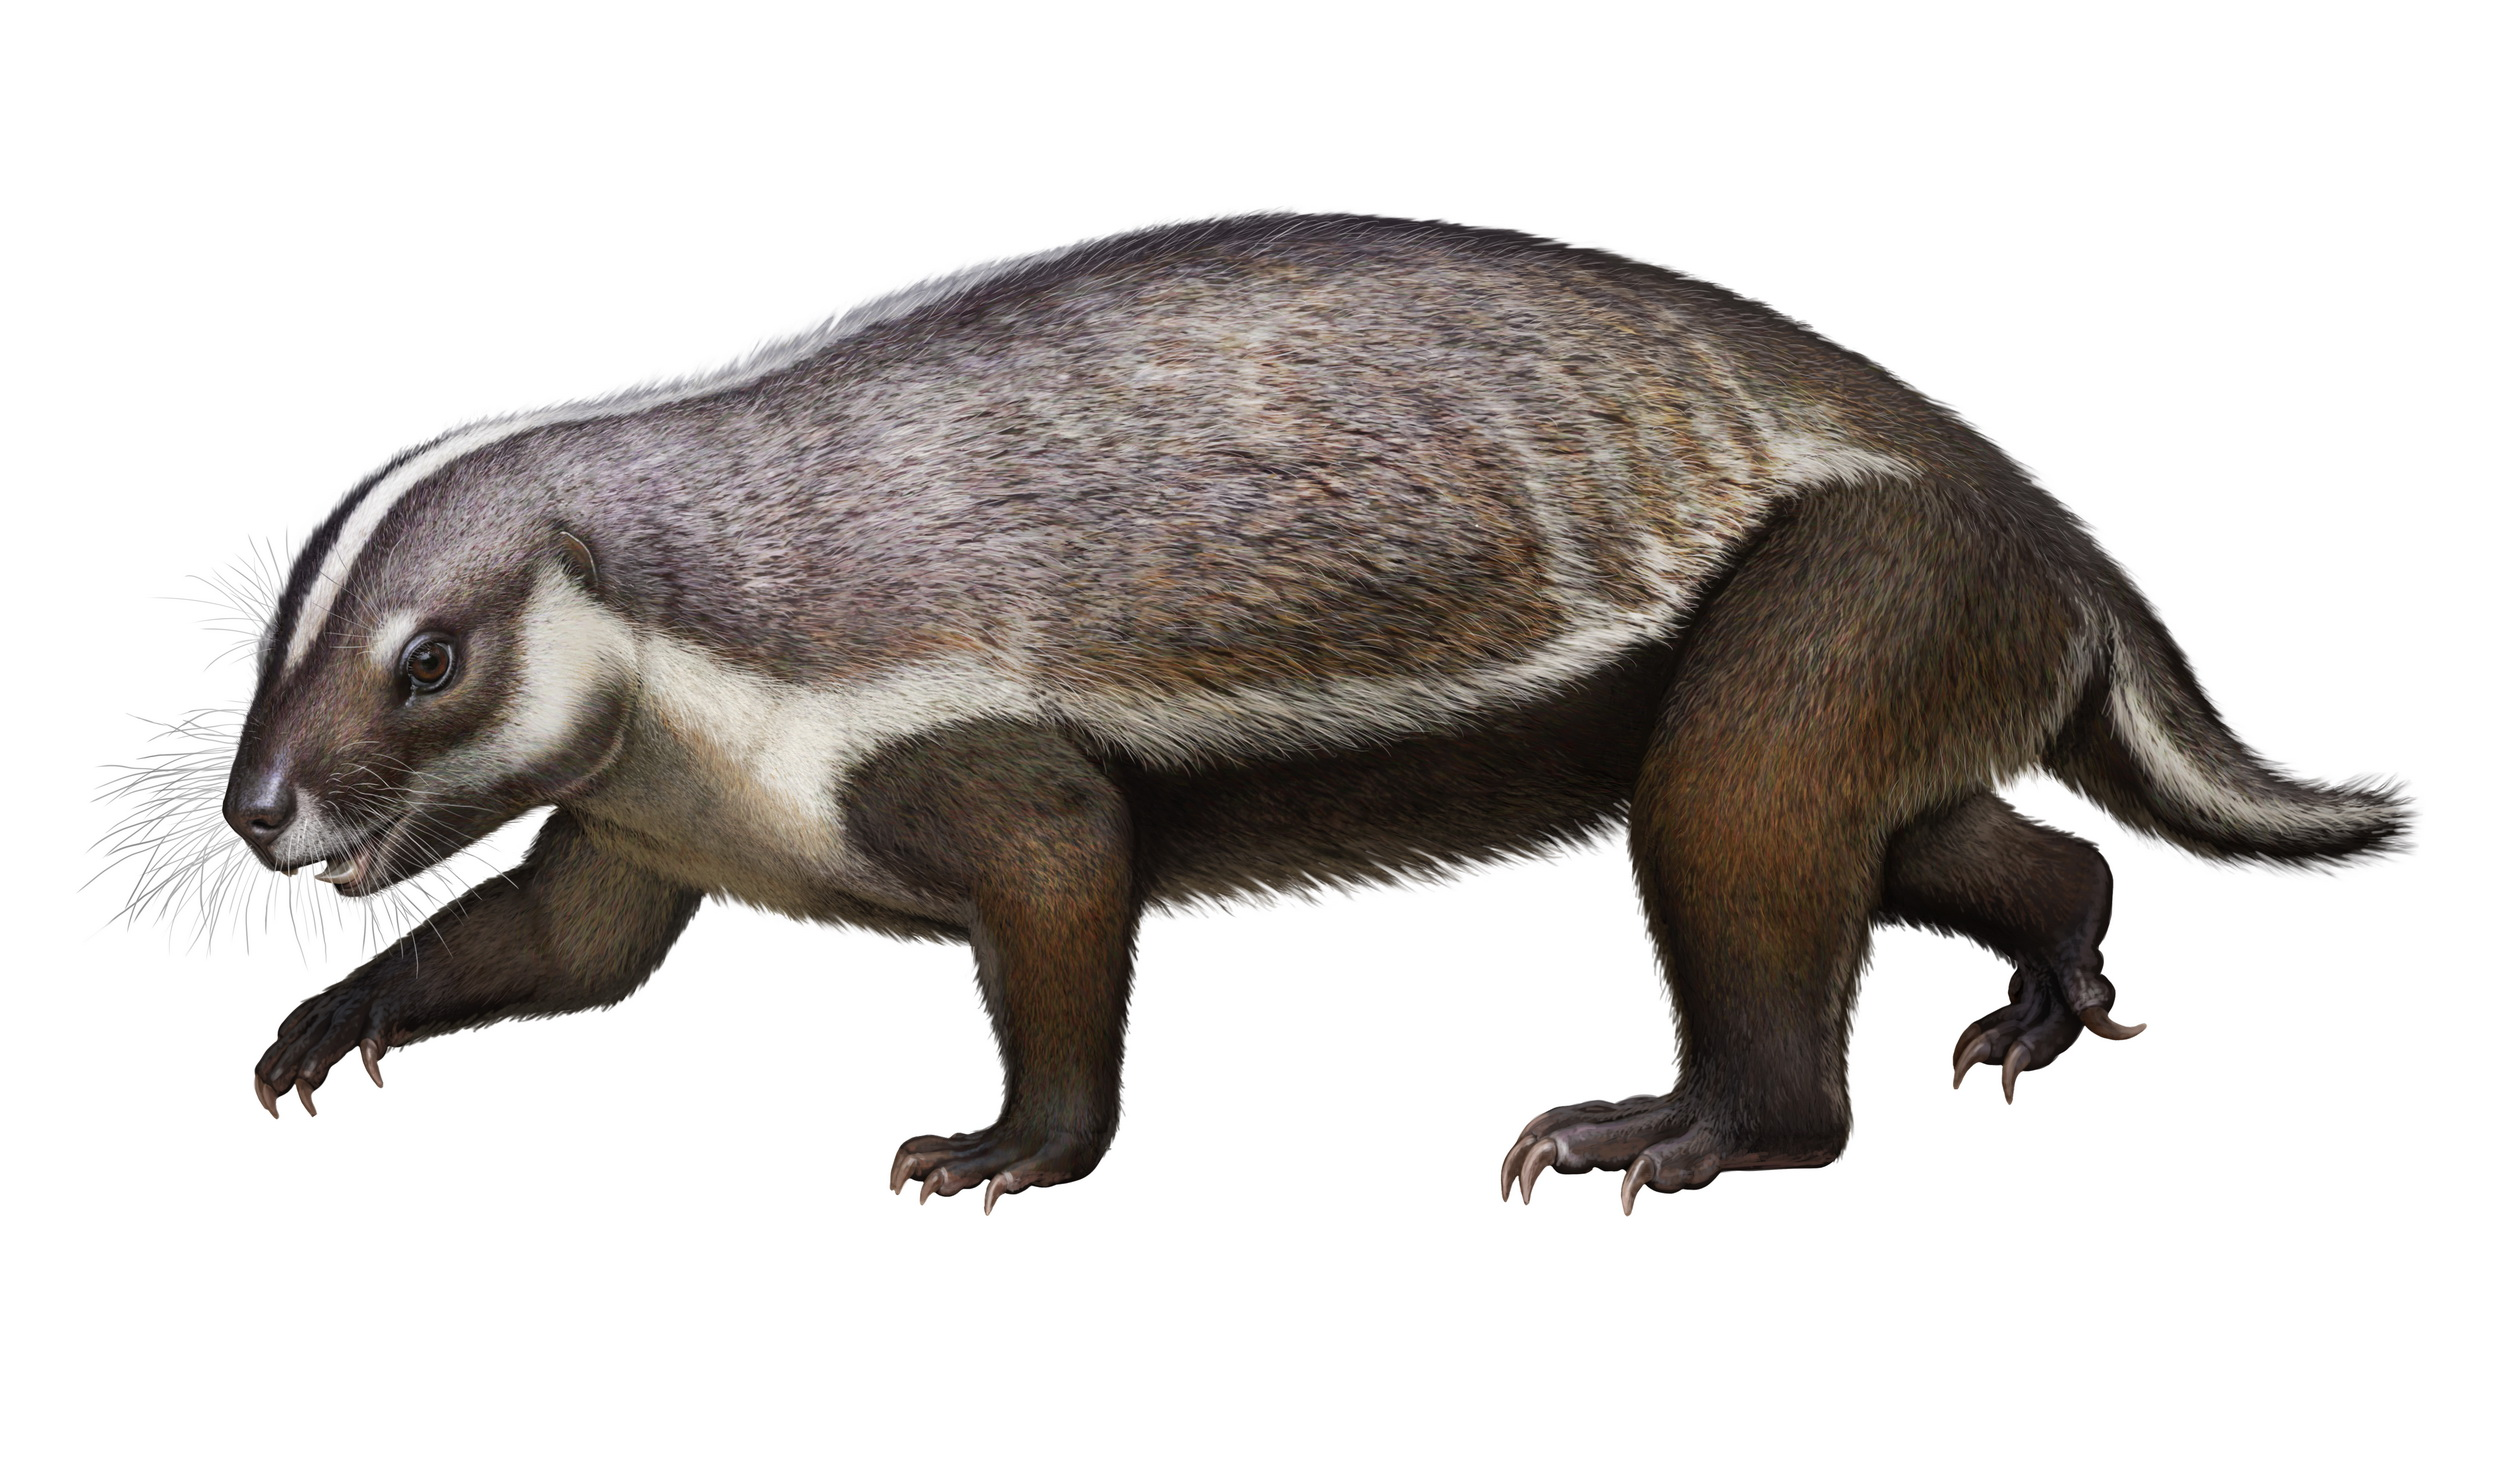 Bizarre 66 million-year-old fossil from Madagascar provides clues on early mammals